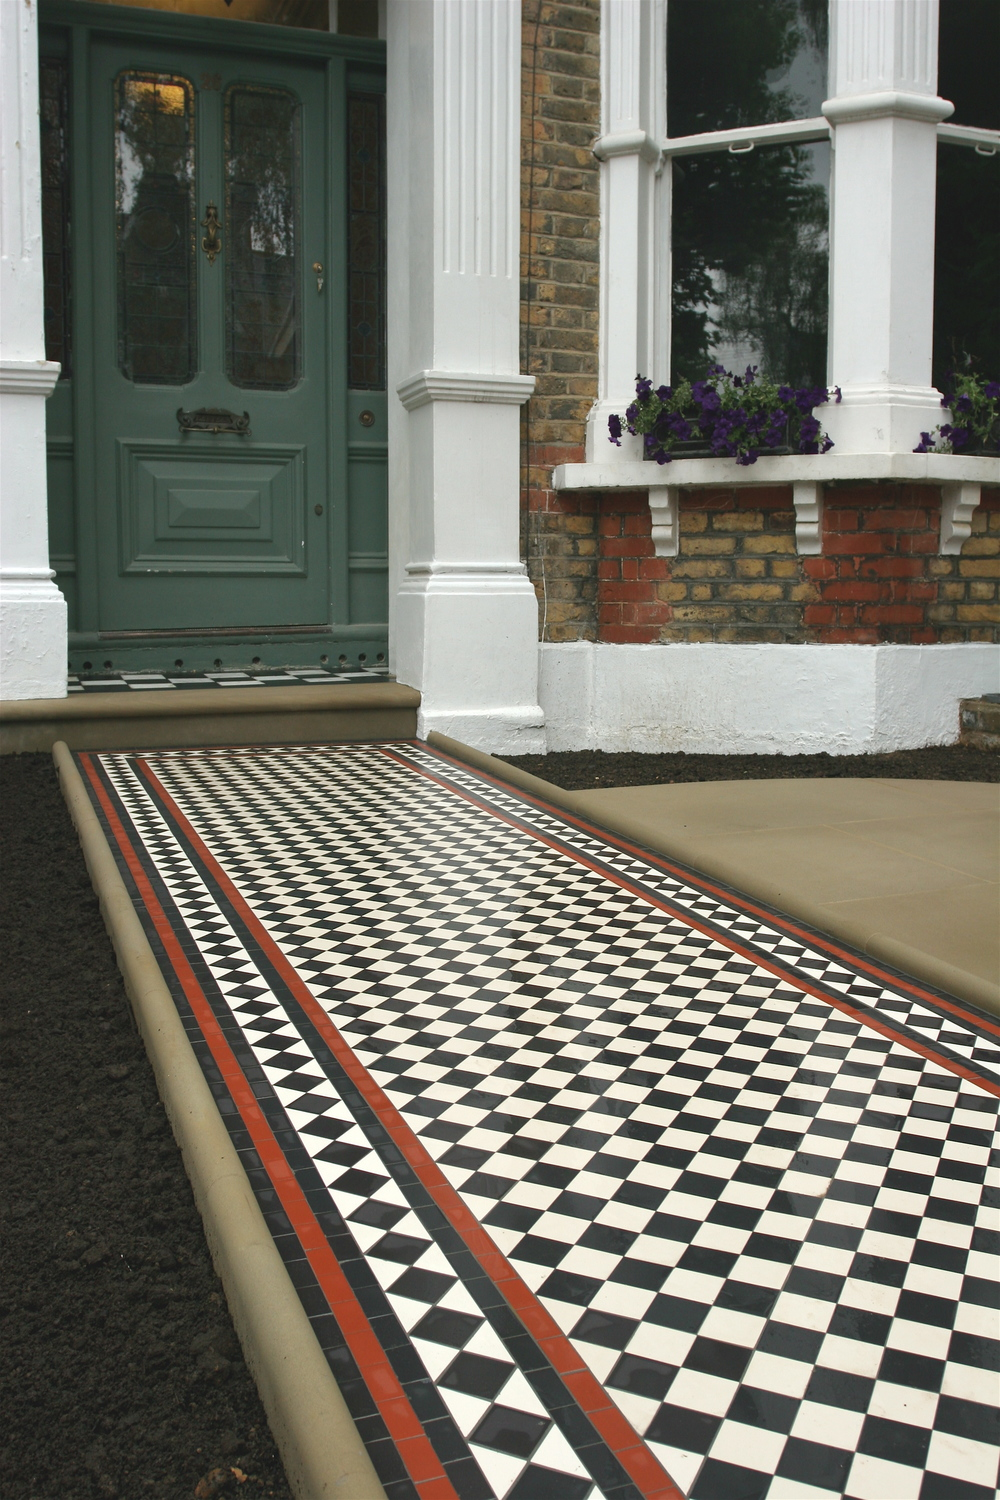 017 Black & White Chequer with Diamond Border and Five Lines